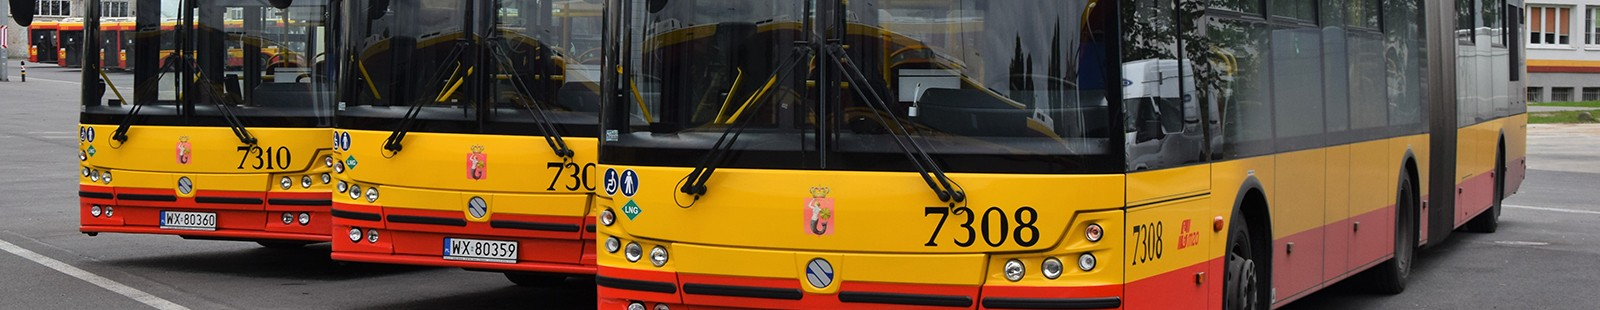 buses in parking lot